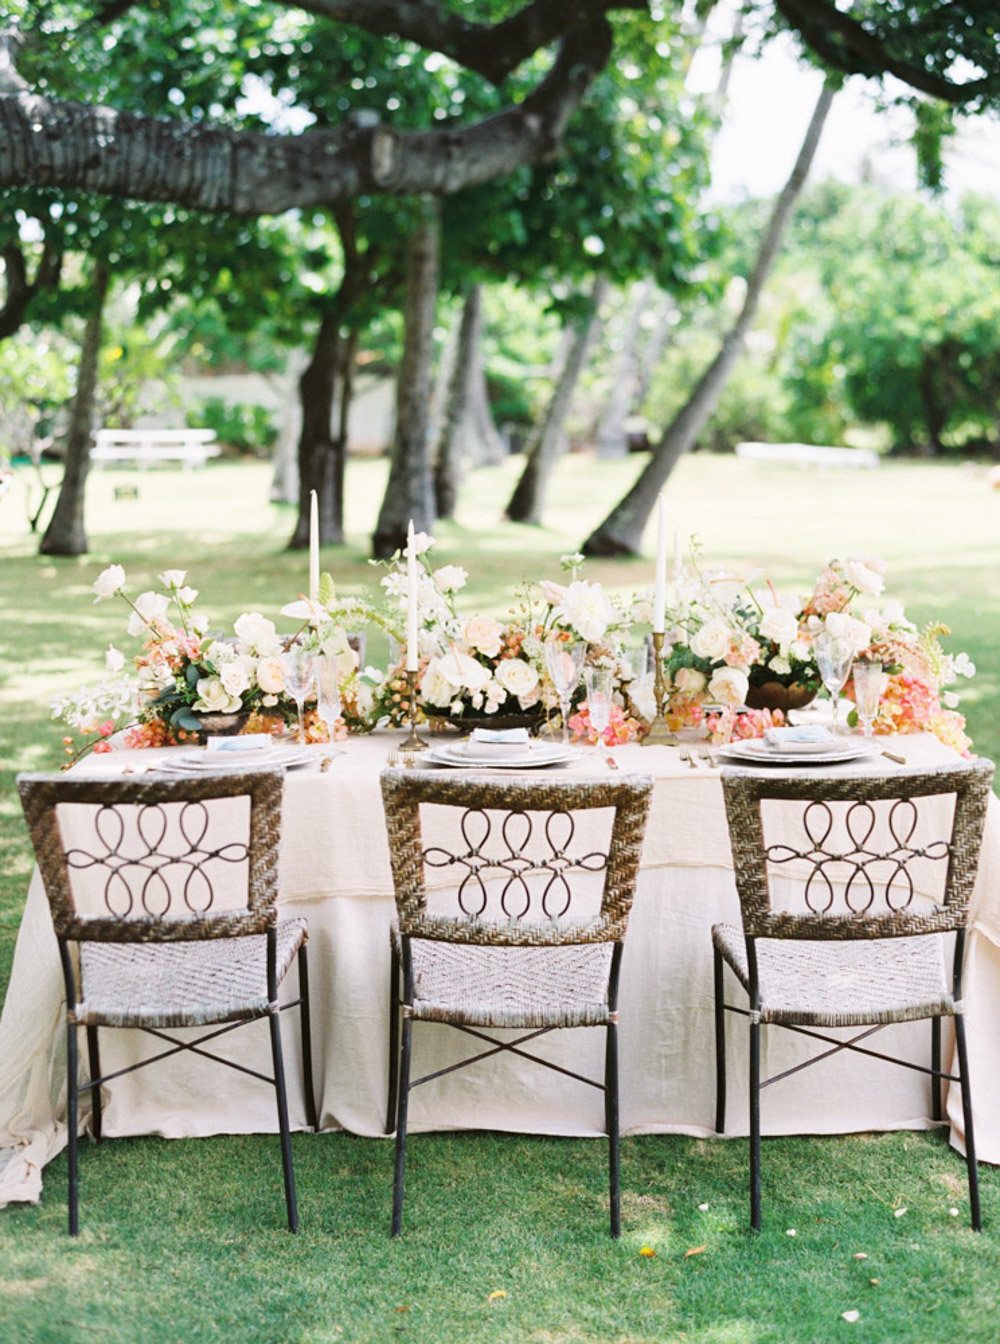 Hawaii Destination Wedding Photographer Sheri McMahon - Fine Art Film Tropical Hawaii Wedding Inspiration-00017